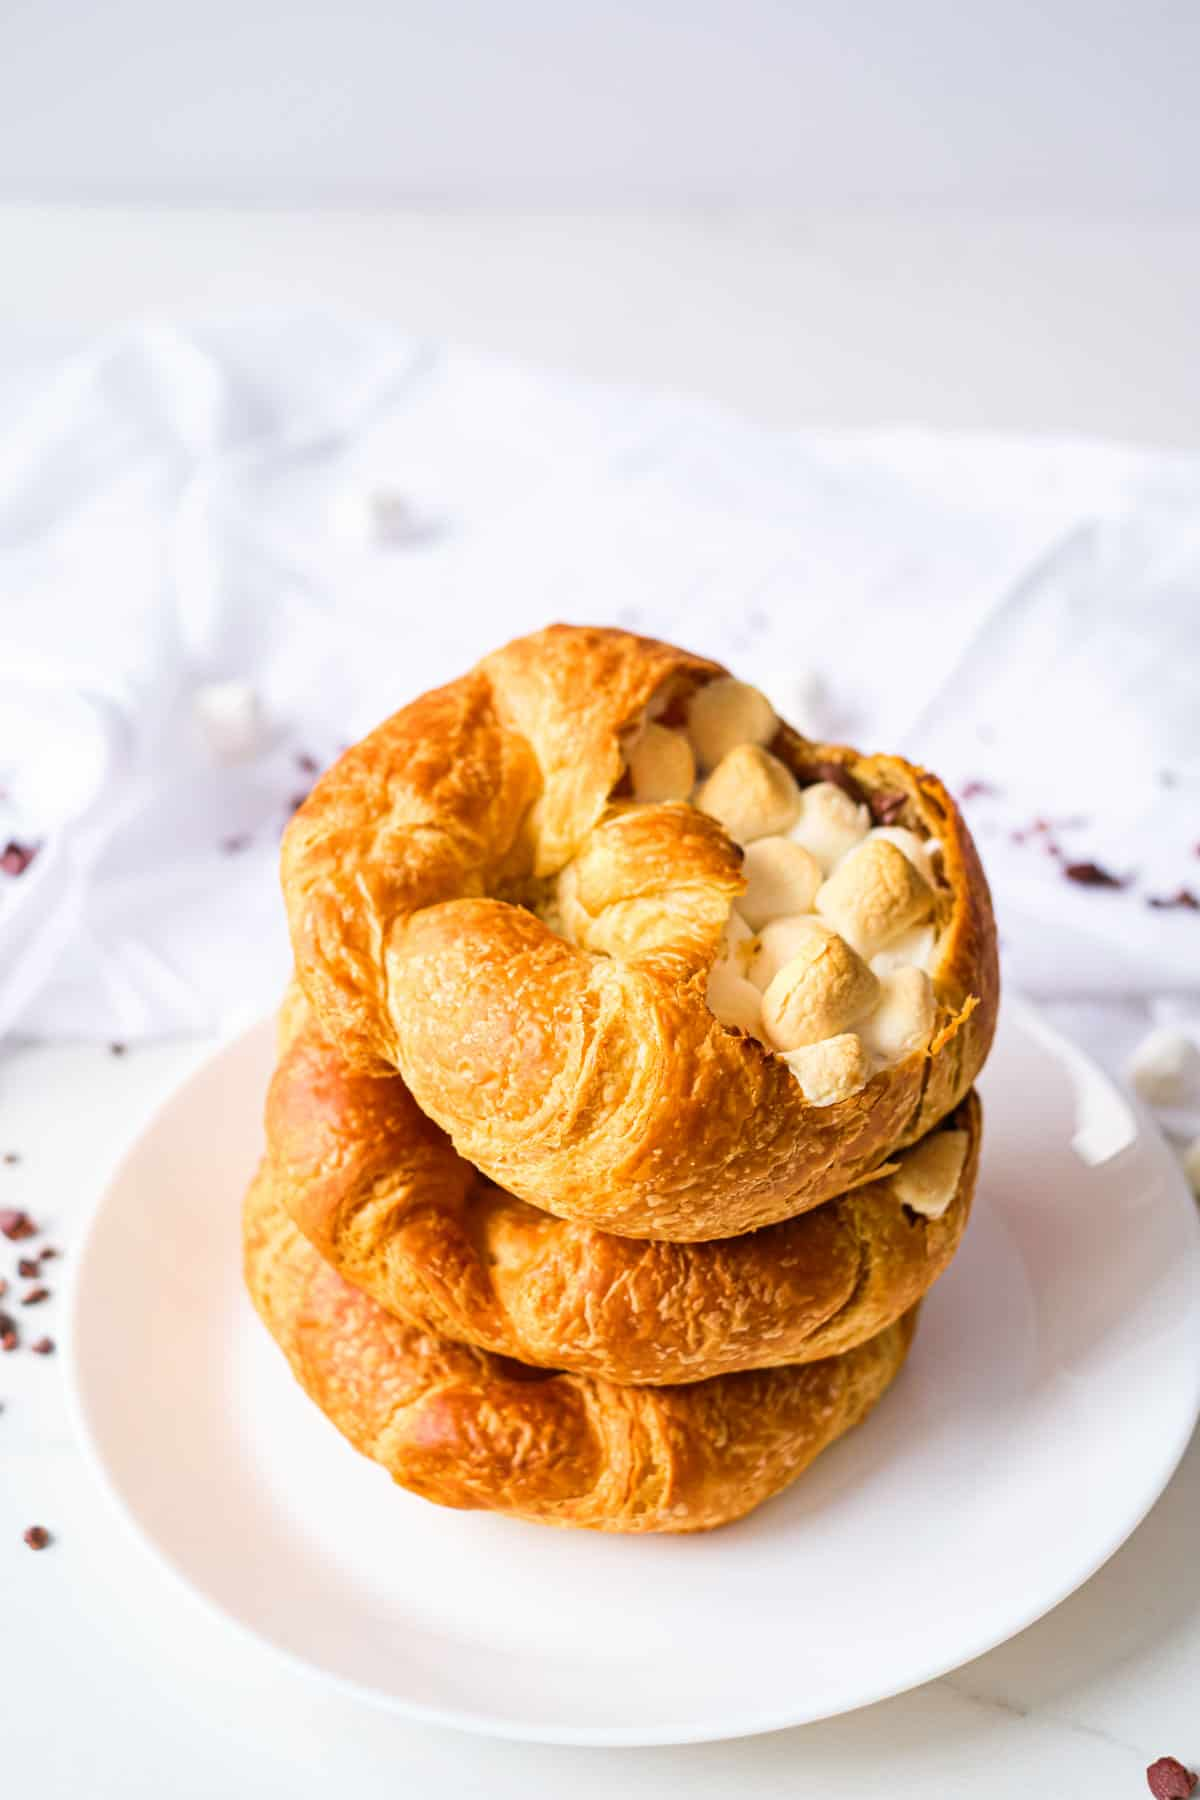 three stuffed croissants stacked vertically on a white plate